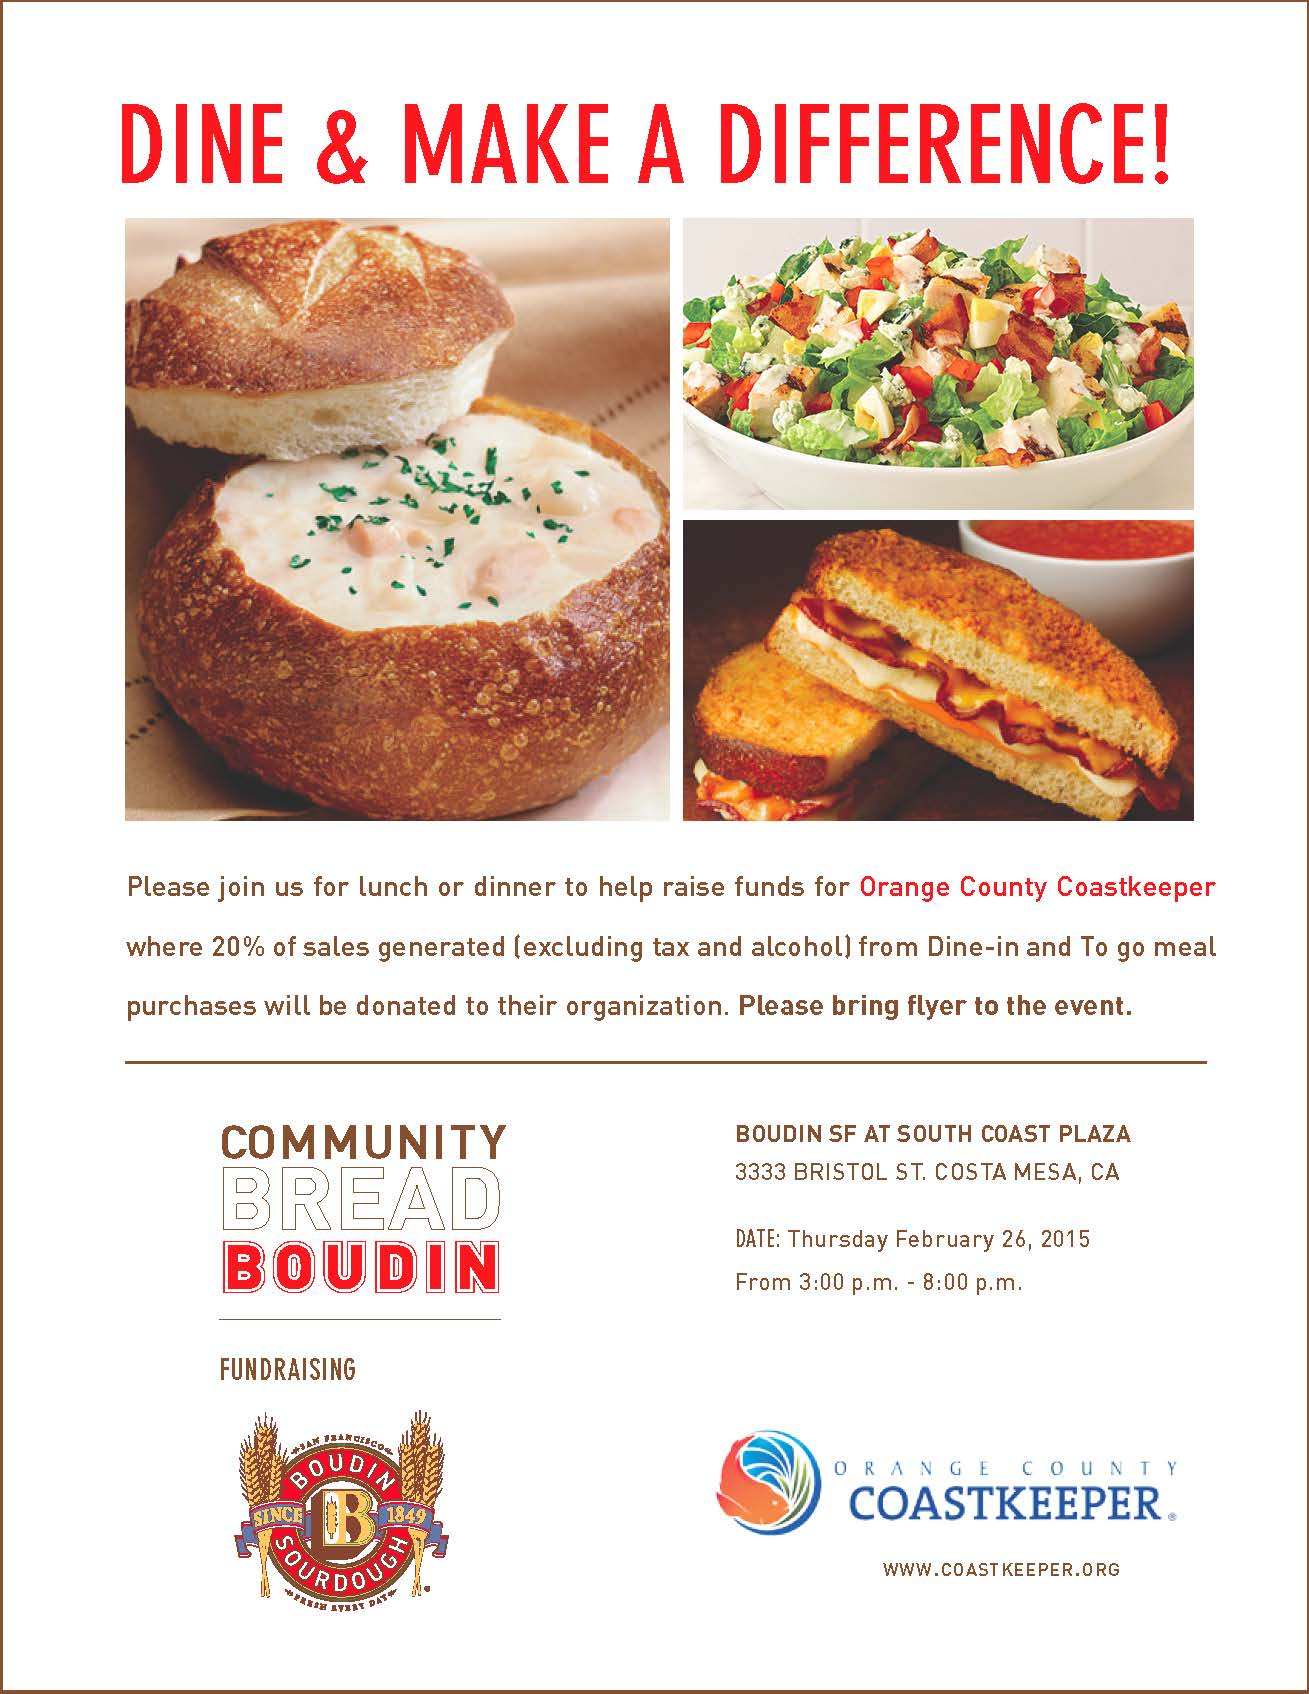 Boudin_Event_Picture.jpg